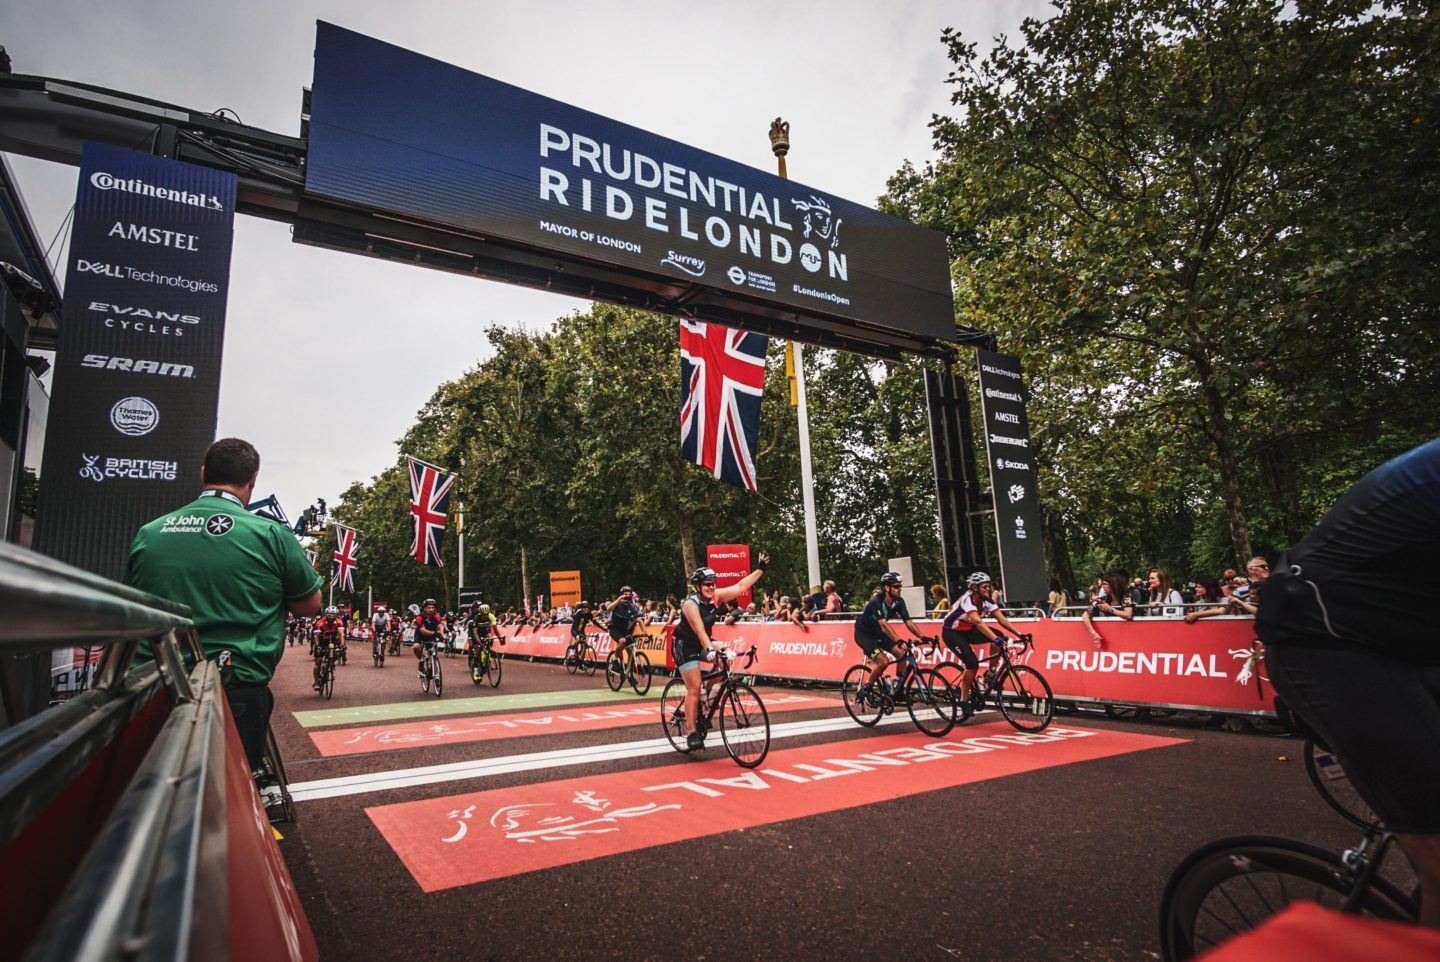 RideLondon 46 - crossing the finish line